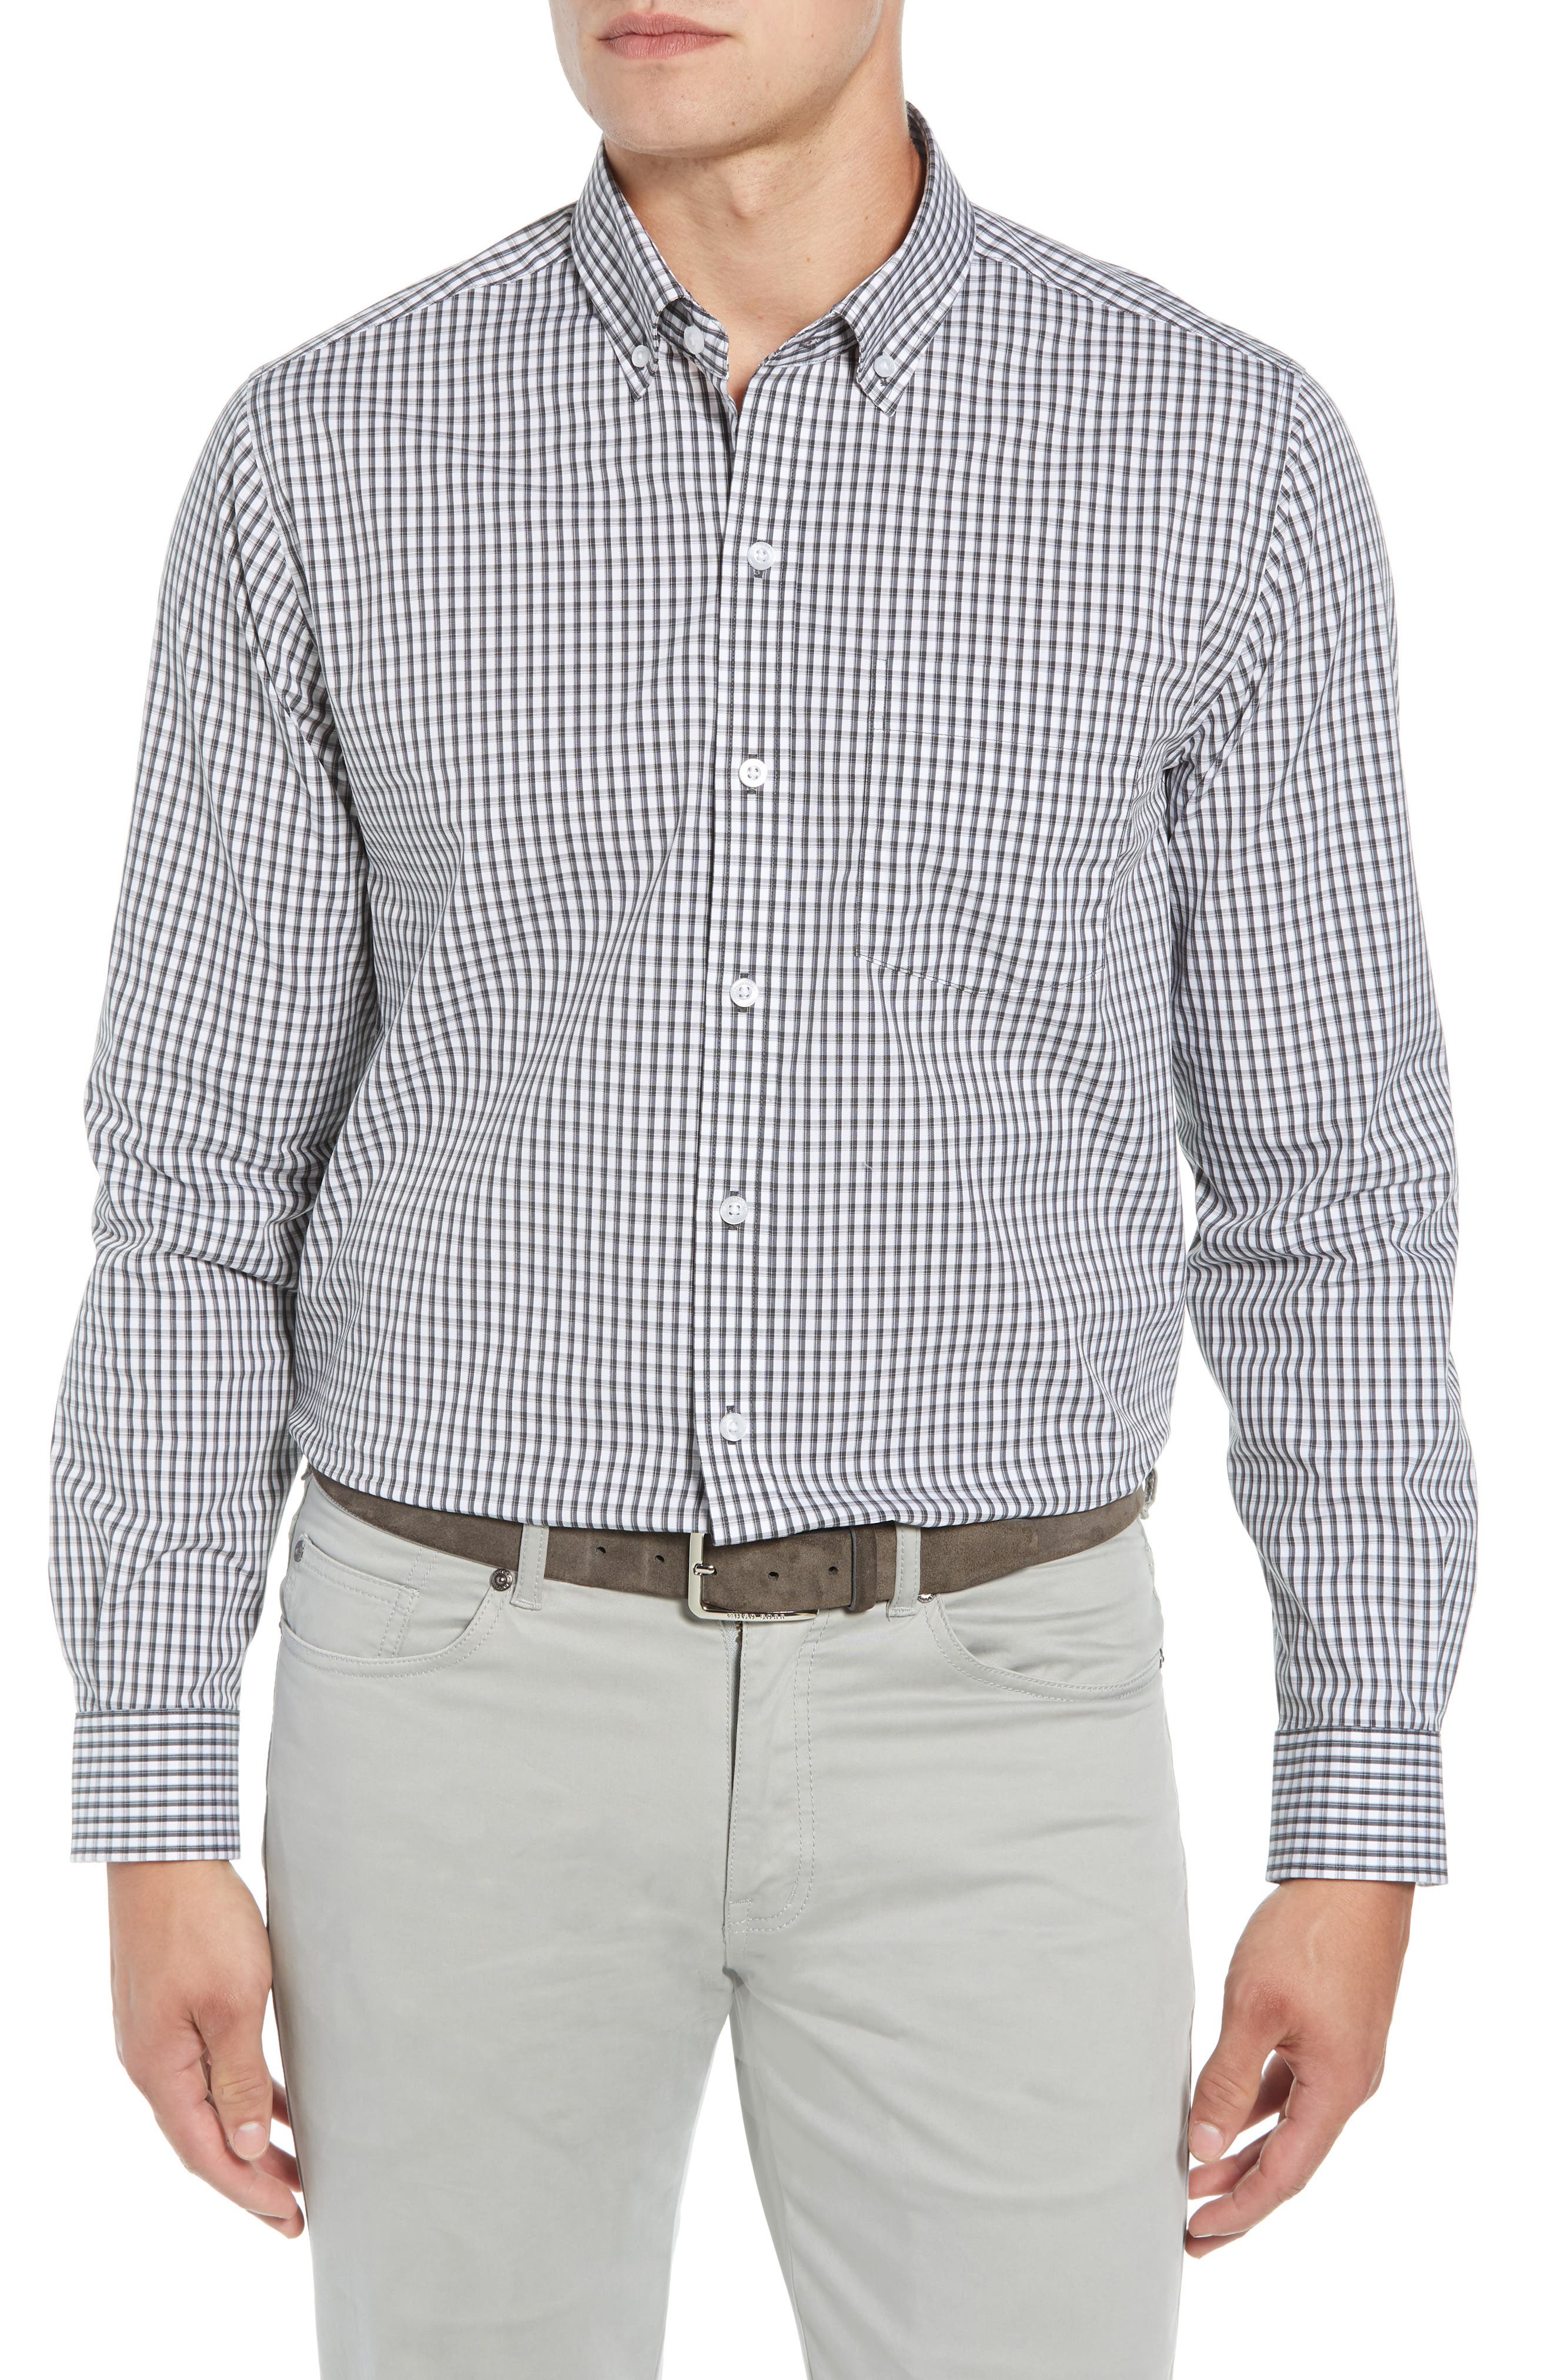 Regular Fit Gingham Non-Iron Sport Shirt,                         Main,                         color, CHARCOAL